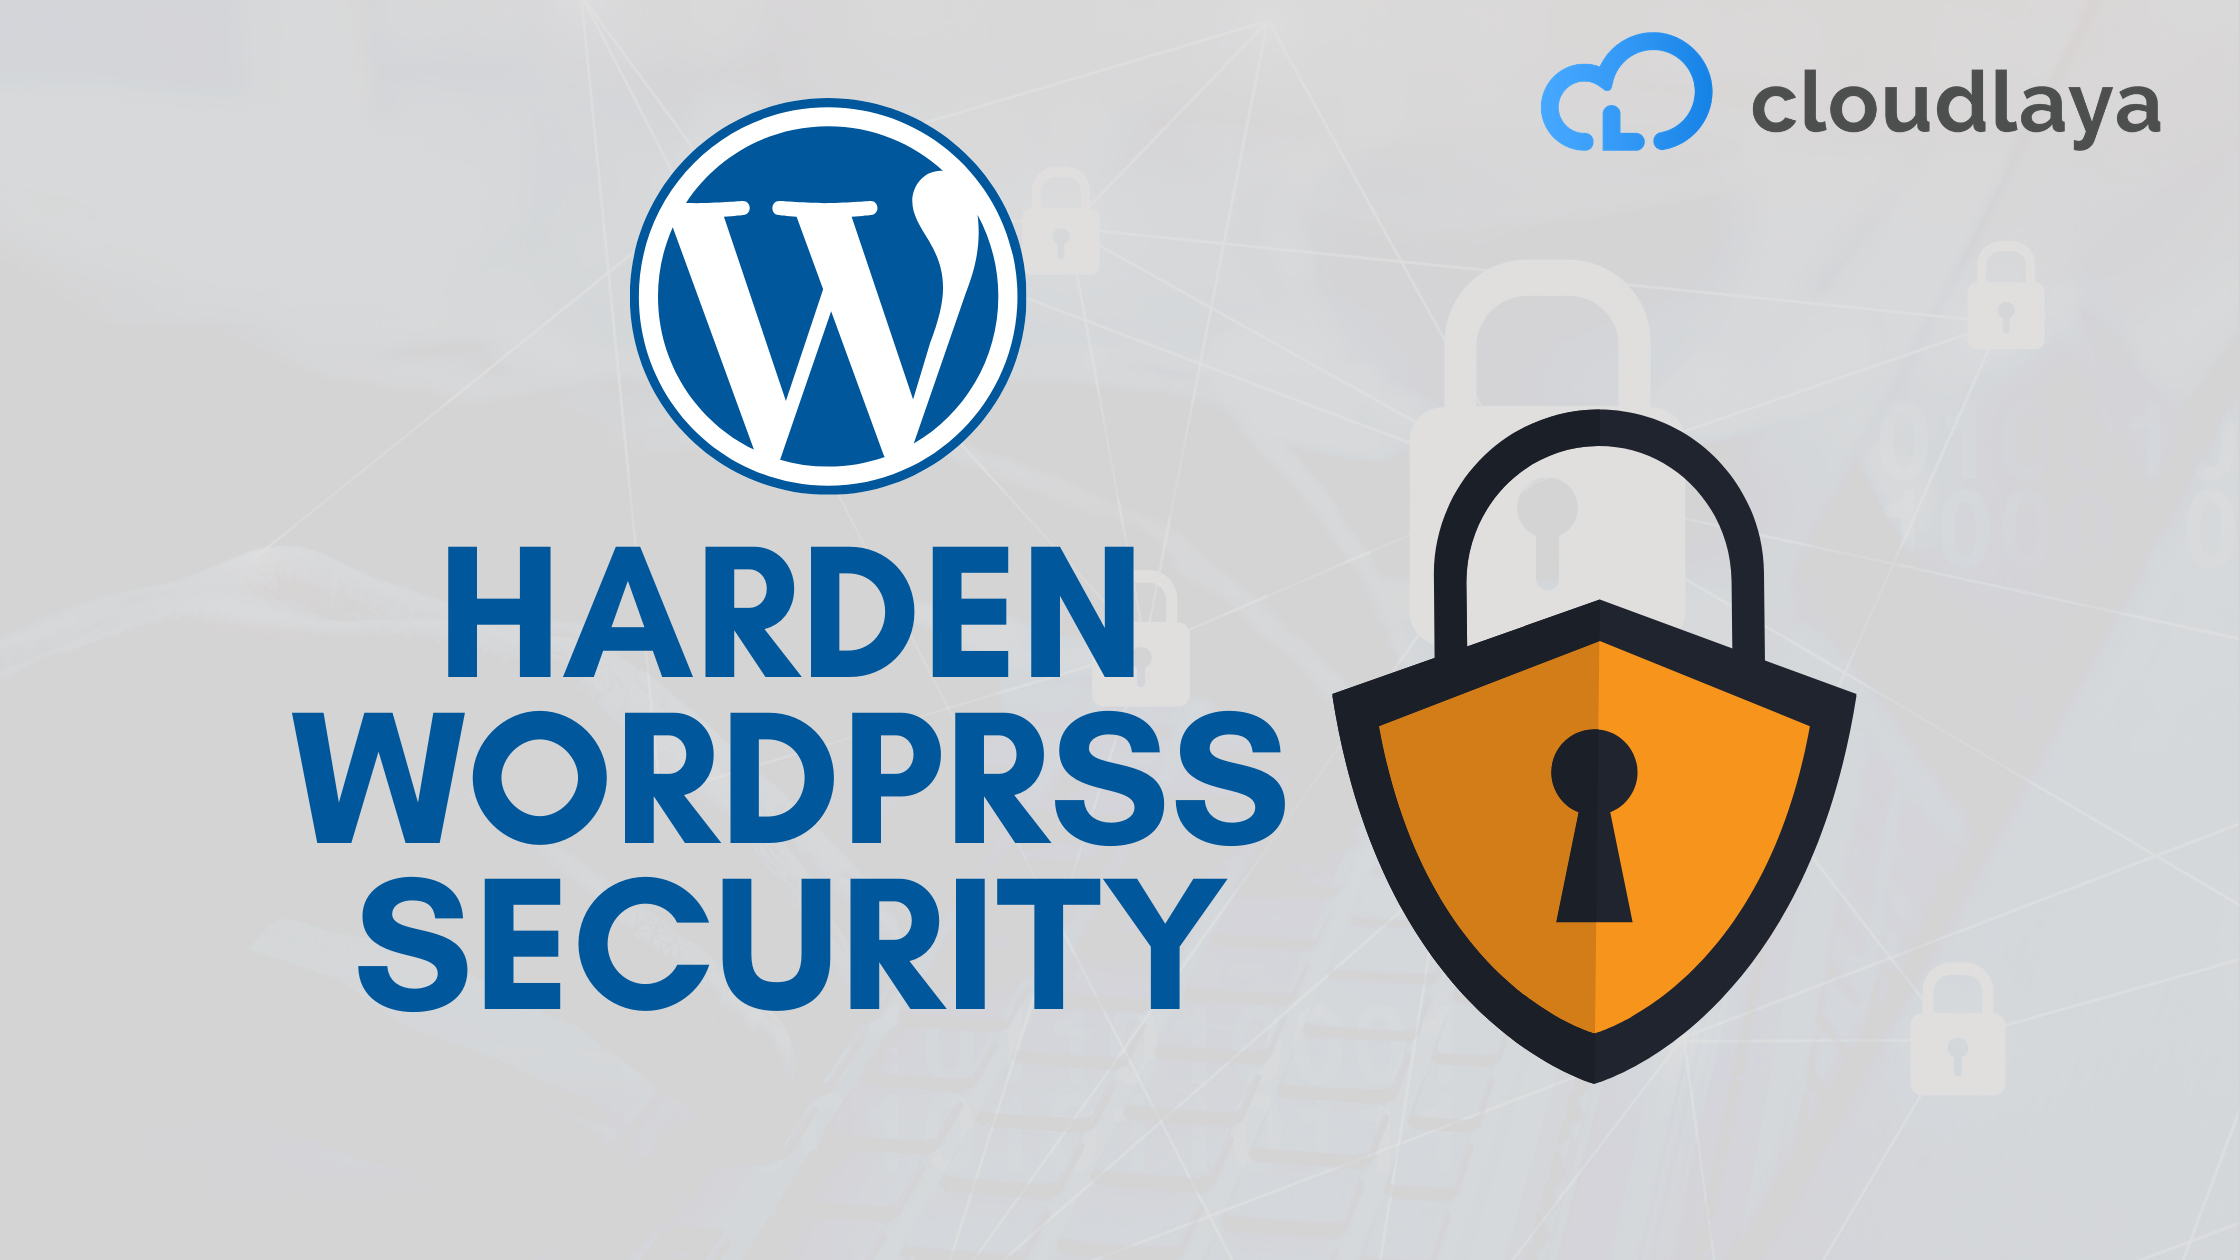 11 Security Tips to Harden your WordPress Site Security